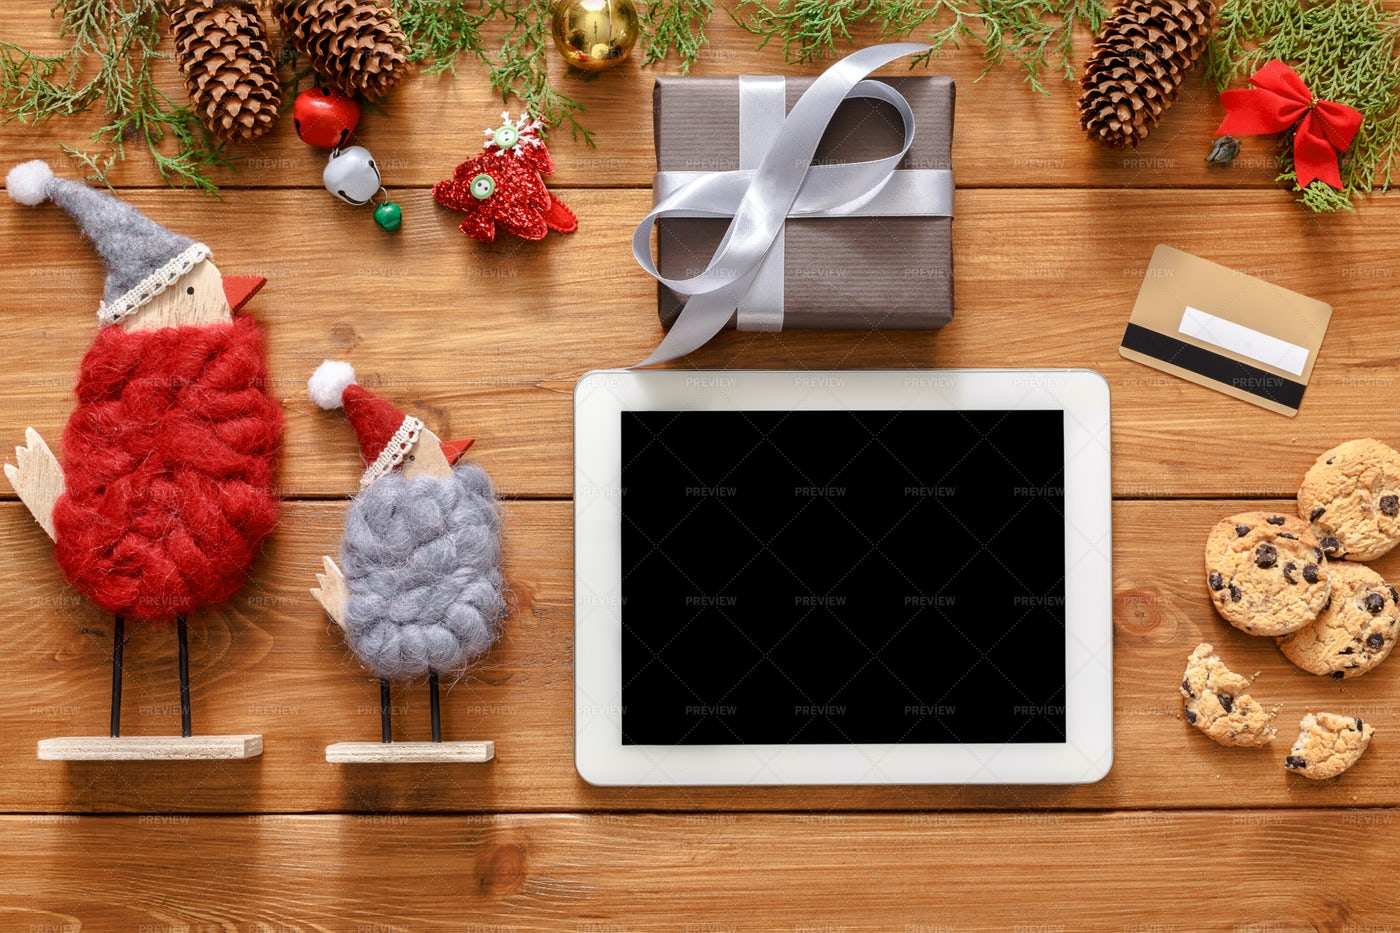 Tablet And Christmas Items: Stock Photos